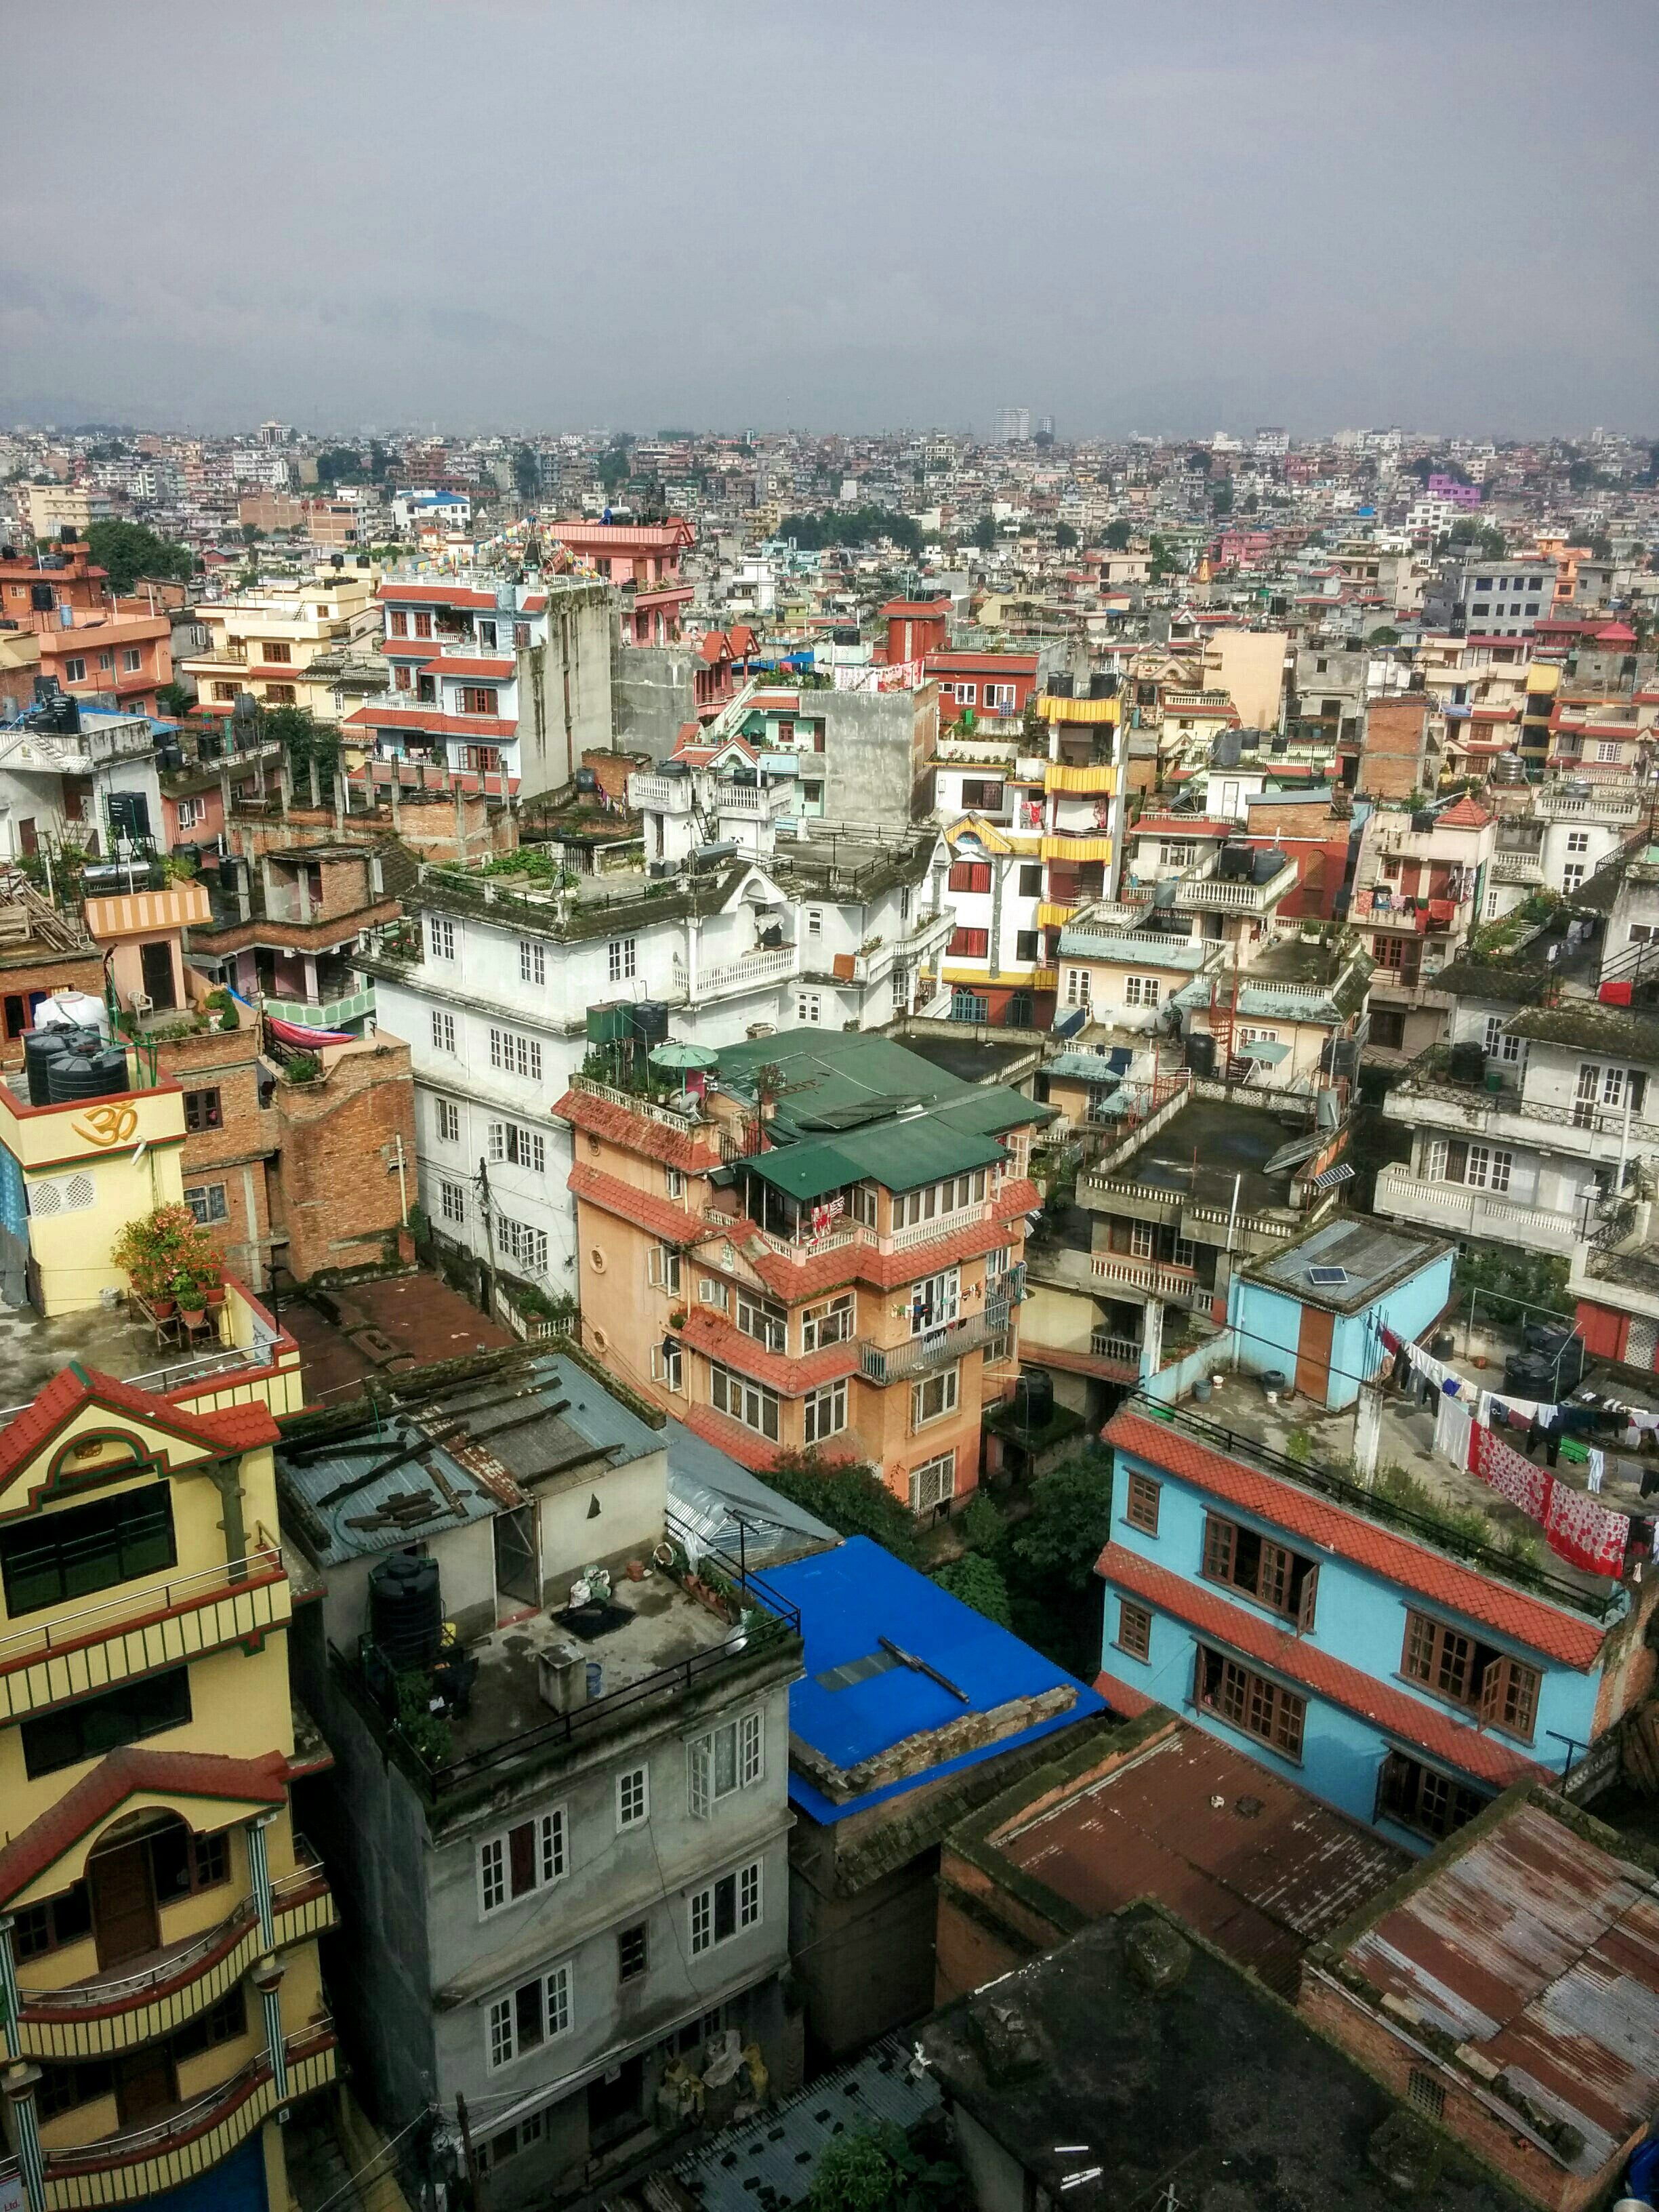 A view from the roof of my hotel on my first morning in Kathmandu.